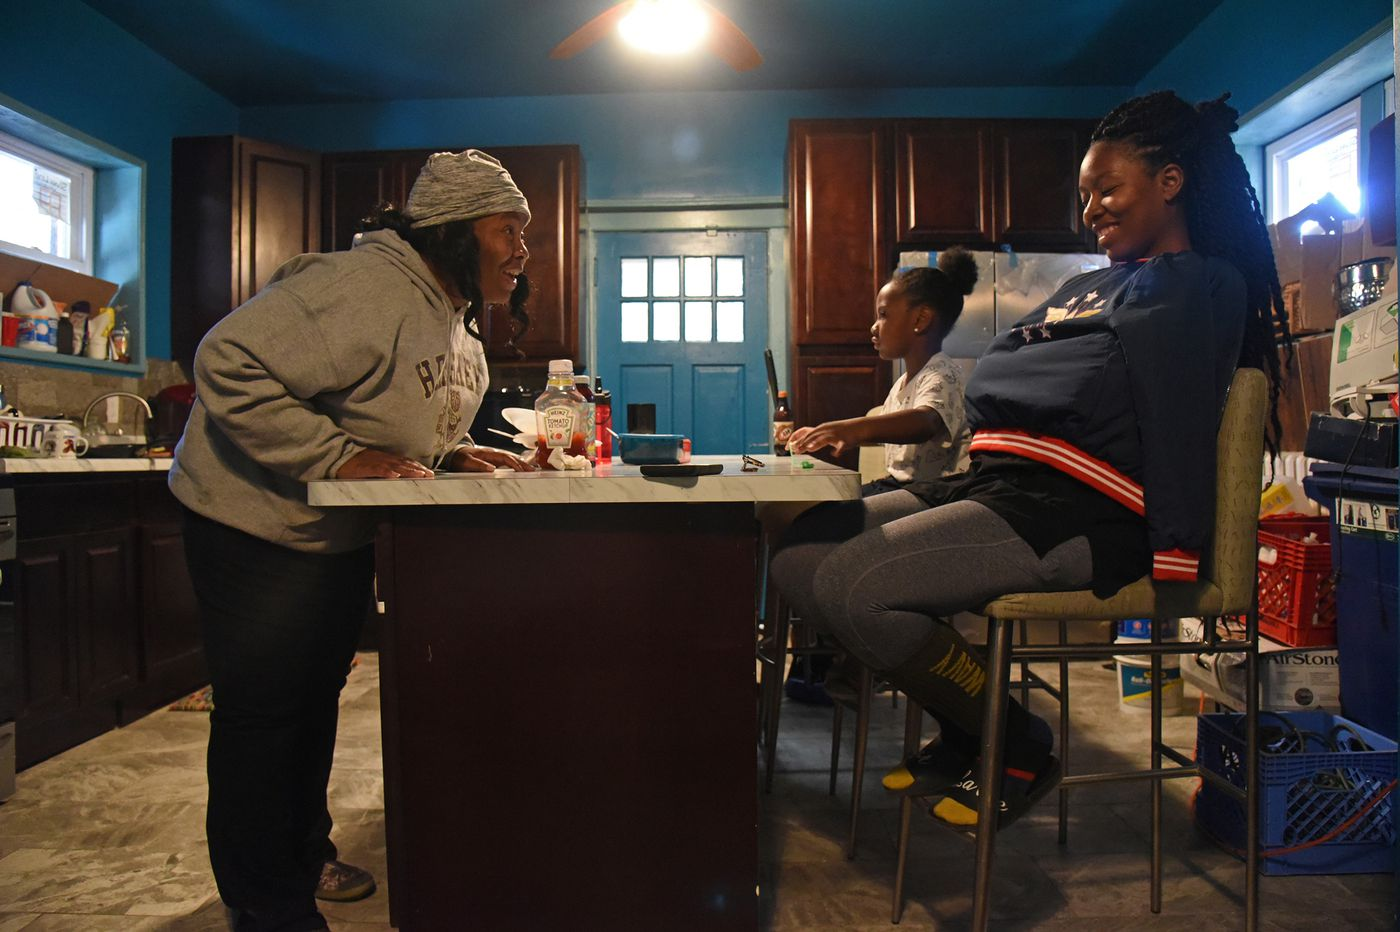 She overcame her father's abuse. Now she has a new home for her children.